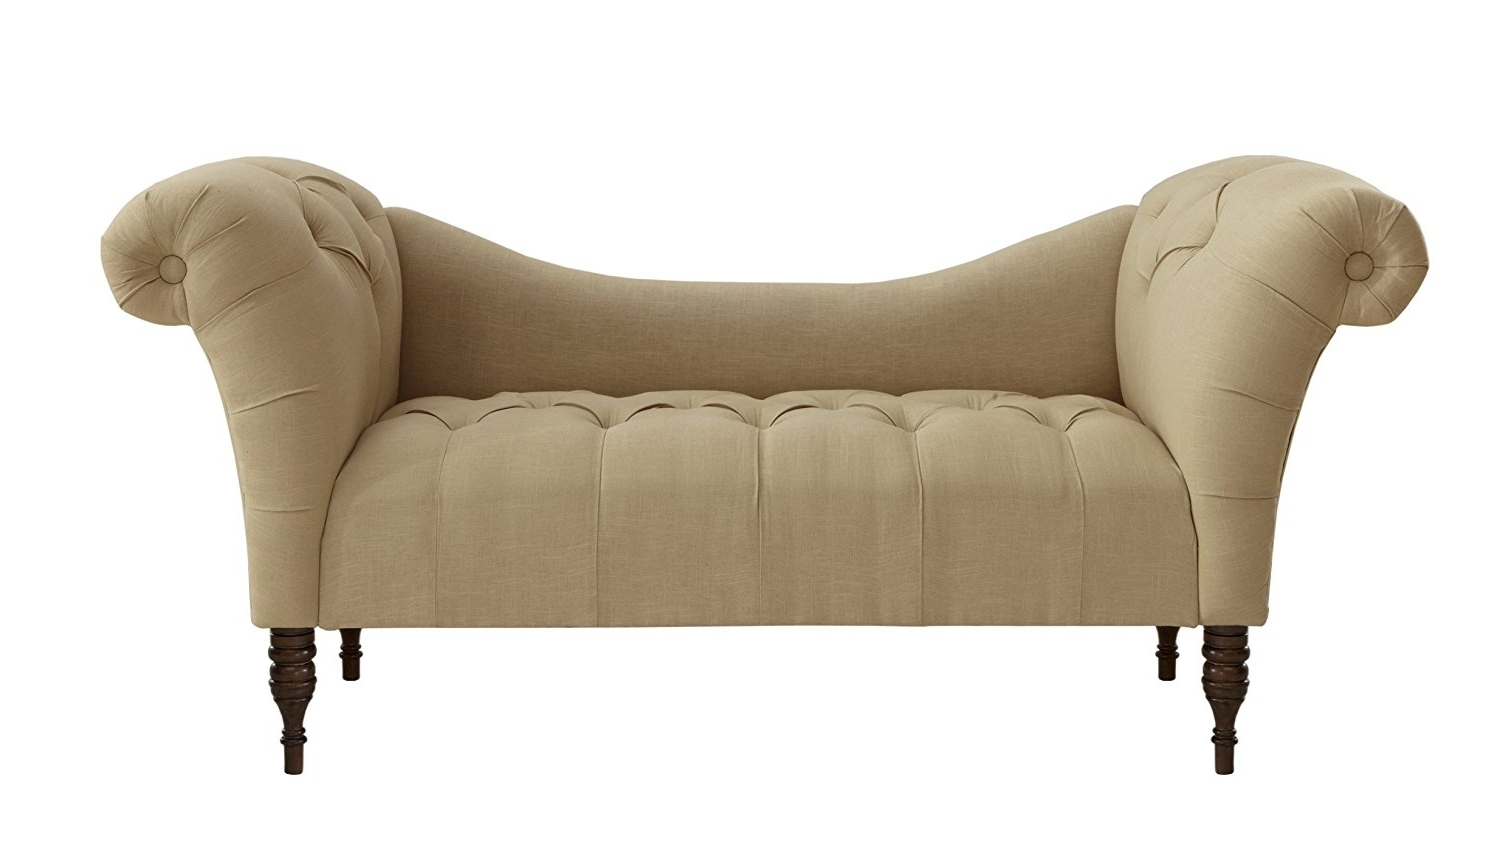 Amazon: Skyline Furniture Tufted Chaise Lounge In Linen Throughout Preferred Chaise Benchs (View 4 of 15)